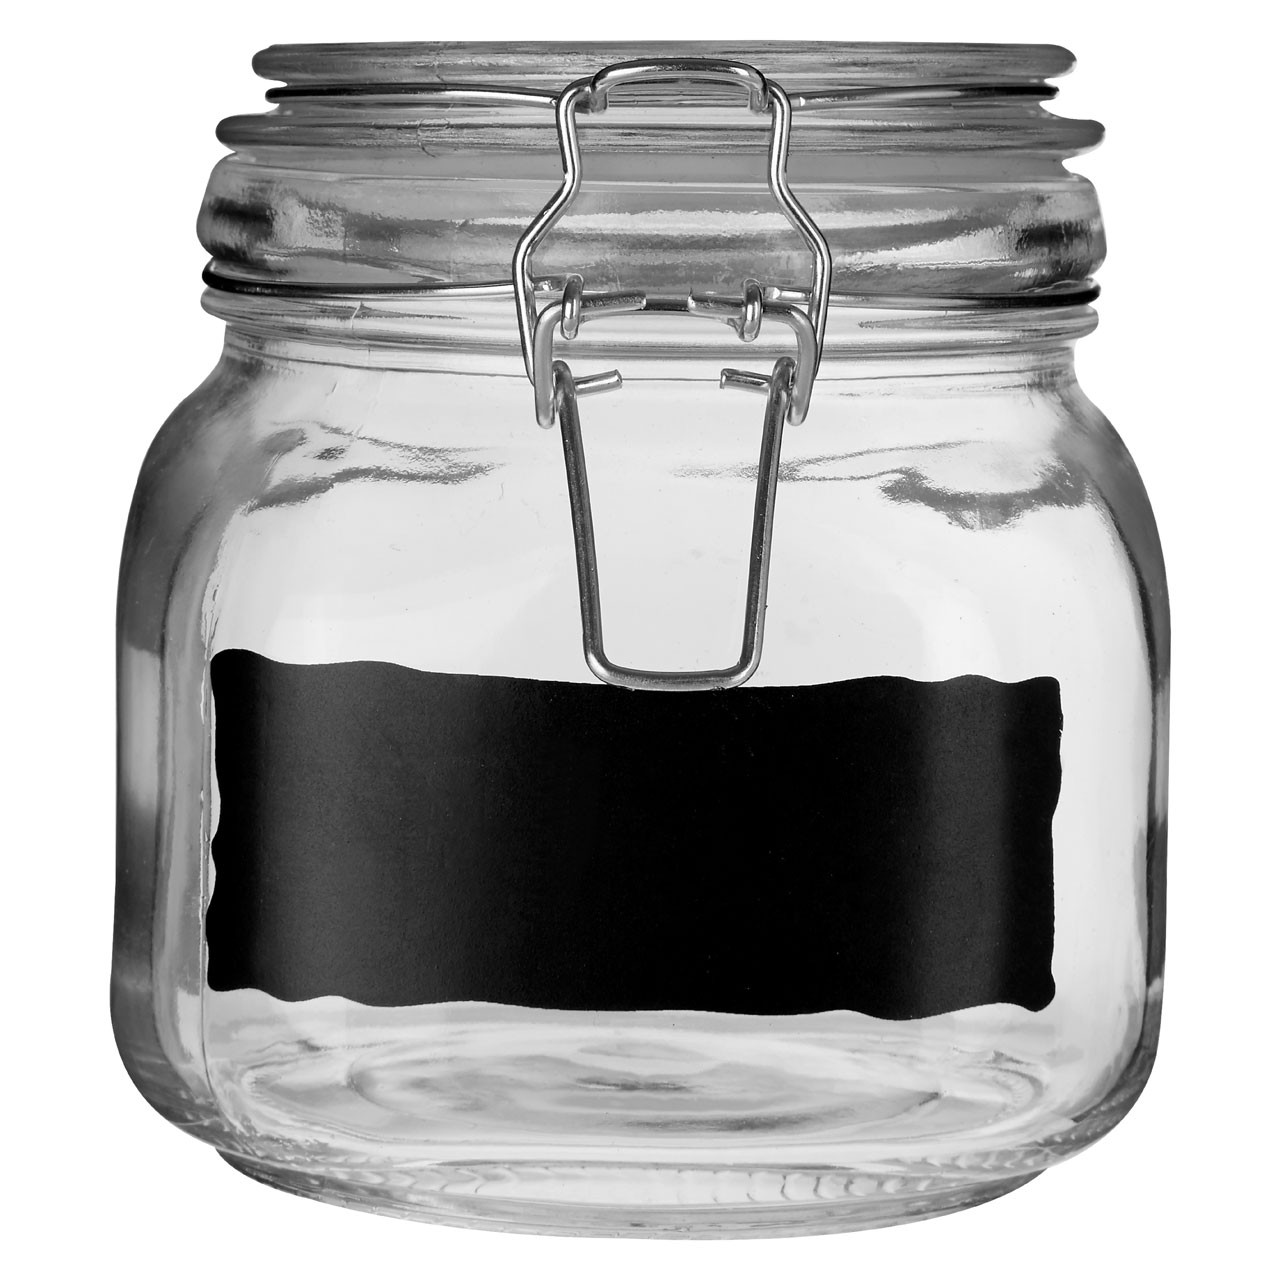 Prime Furnishing Glass Storage Jar With Chalkboard, Set Of 3